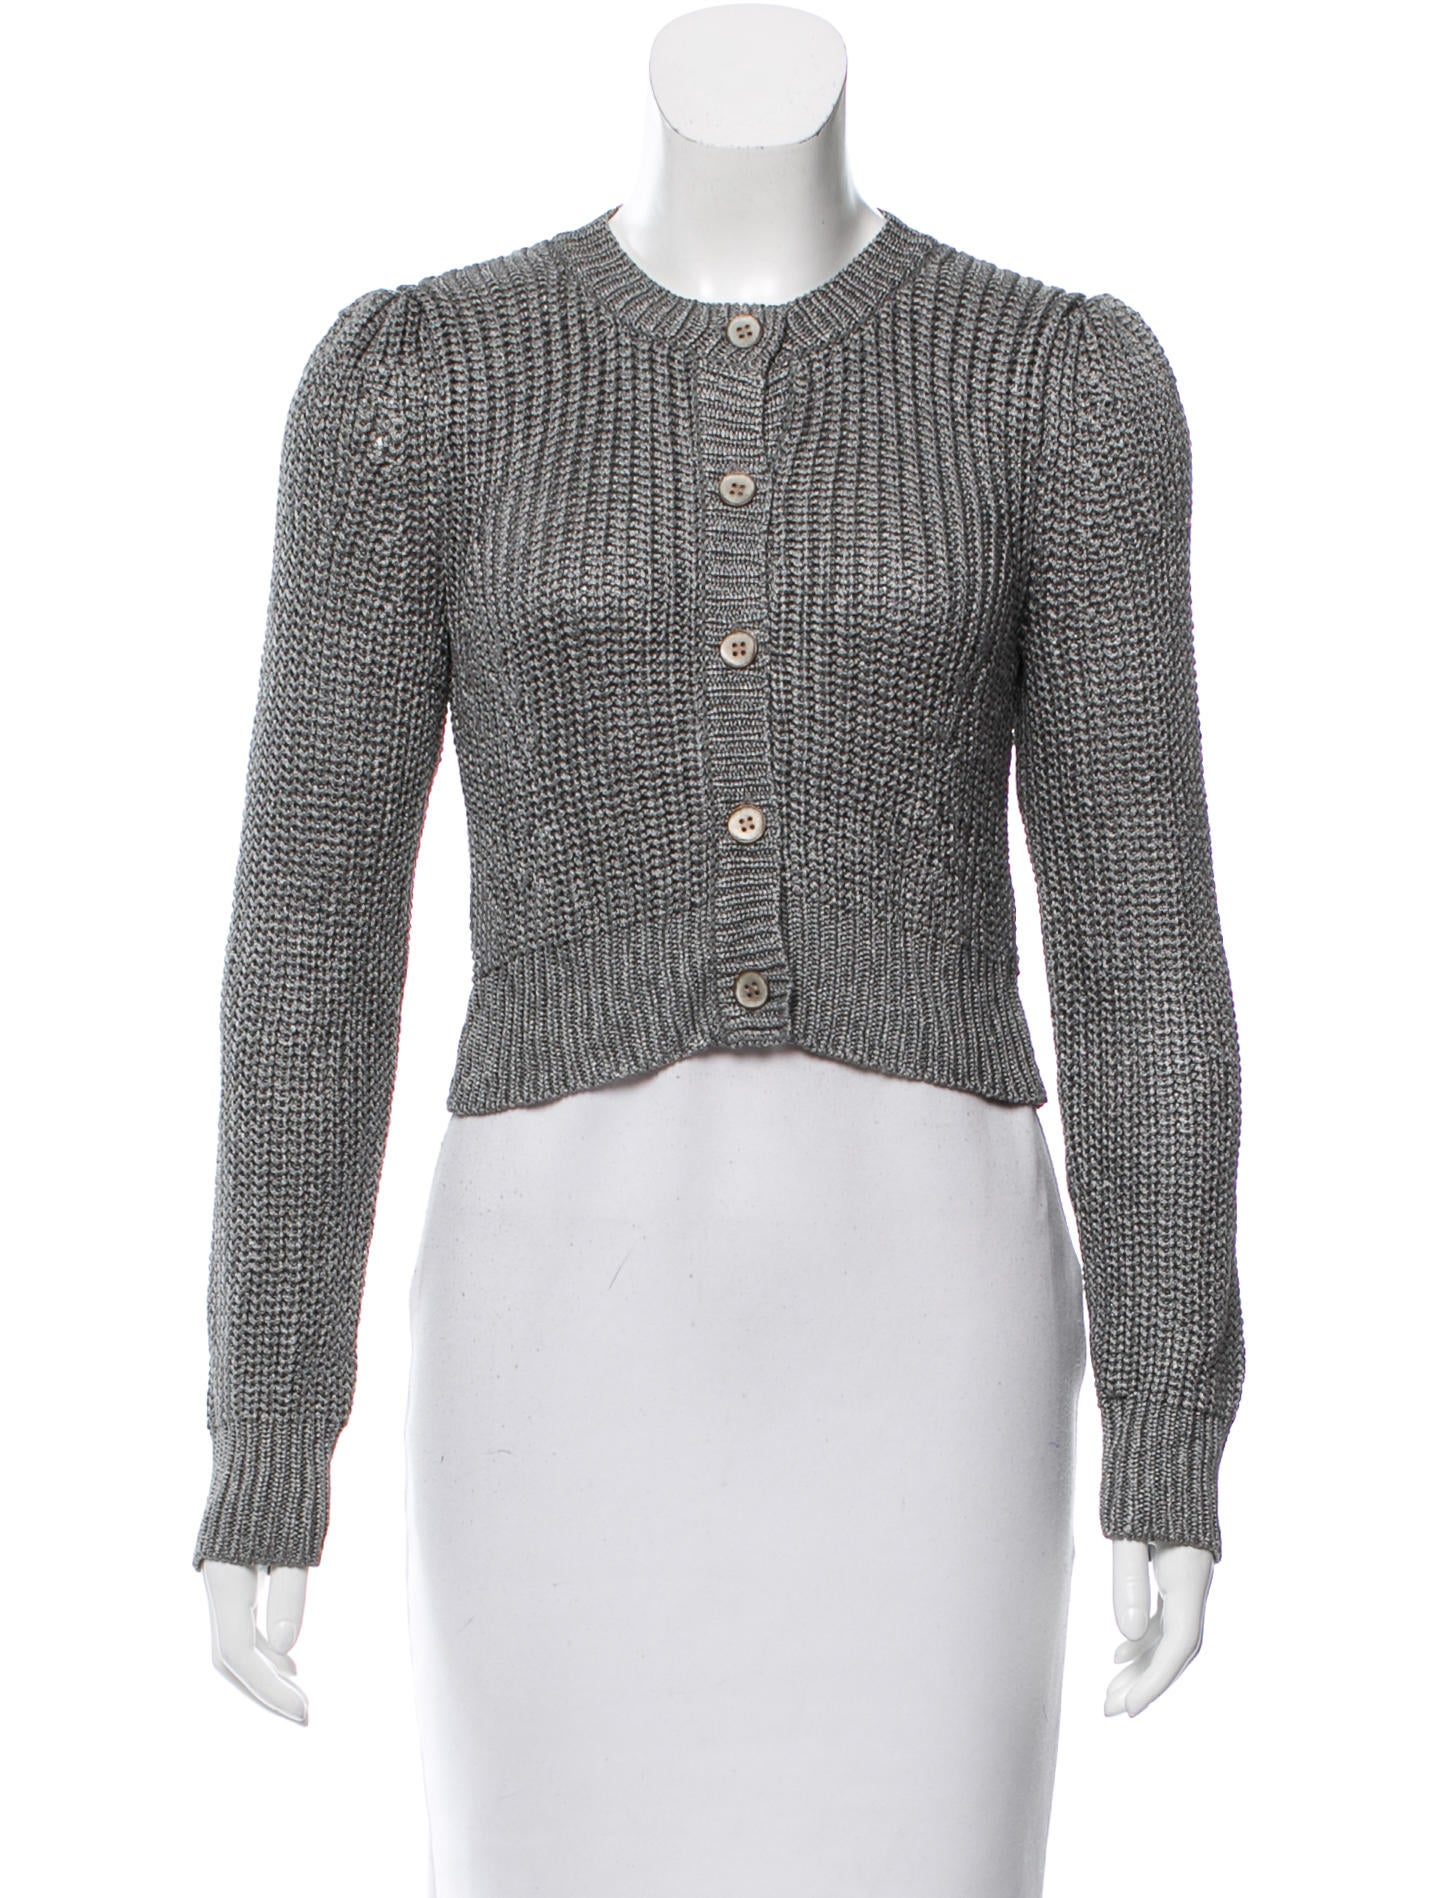 Complete your vintage-inspired outfit with the selection of vintage and cropped cardigans from Unique Vintage. FREE SHIPPING over $